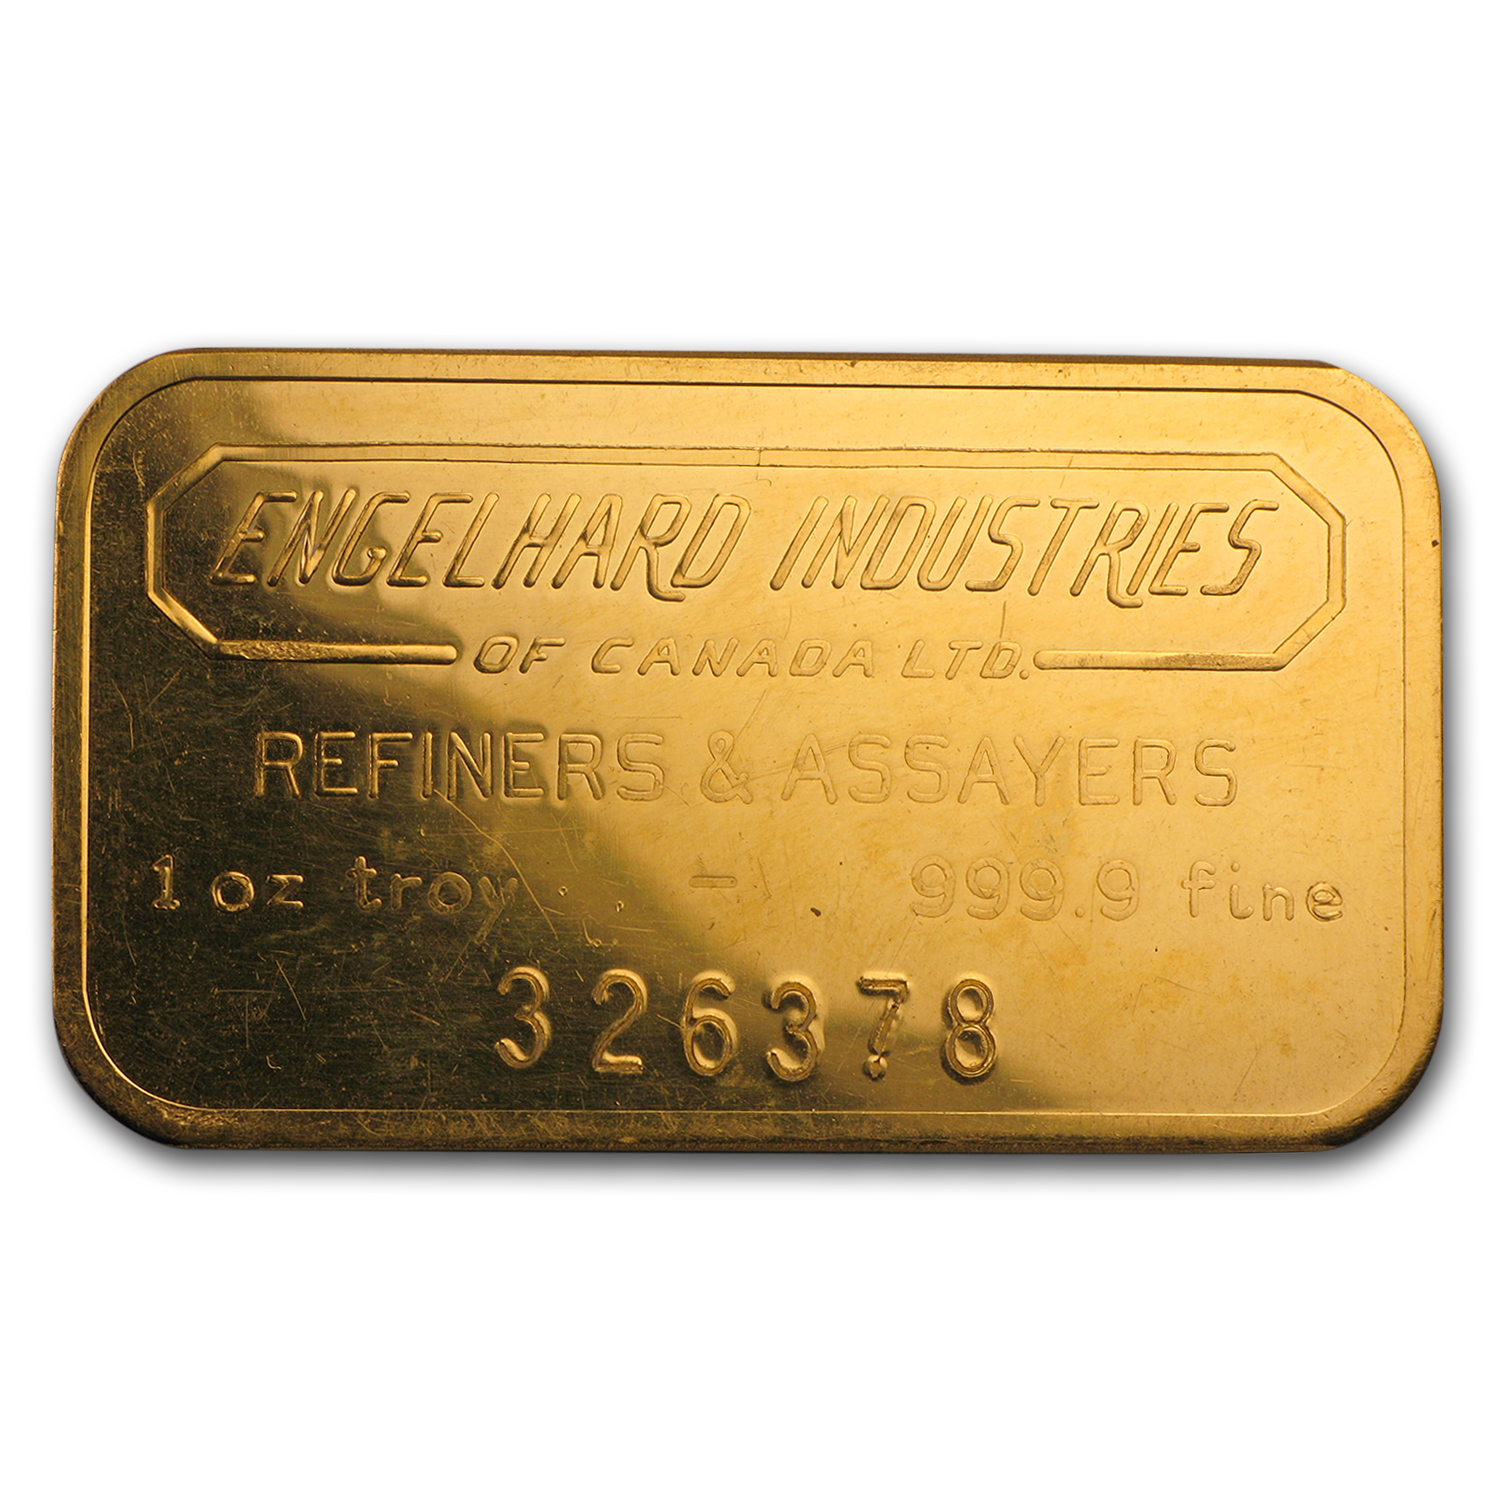 1 oz Gold Bars - Engelhard Industries